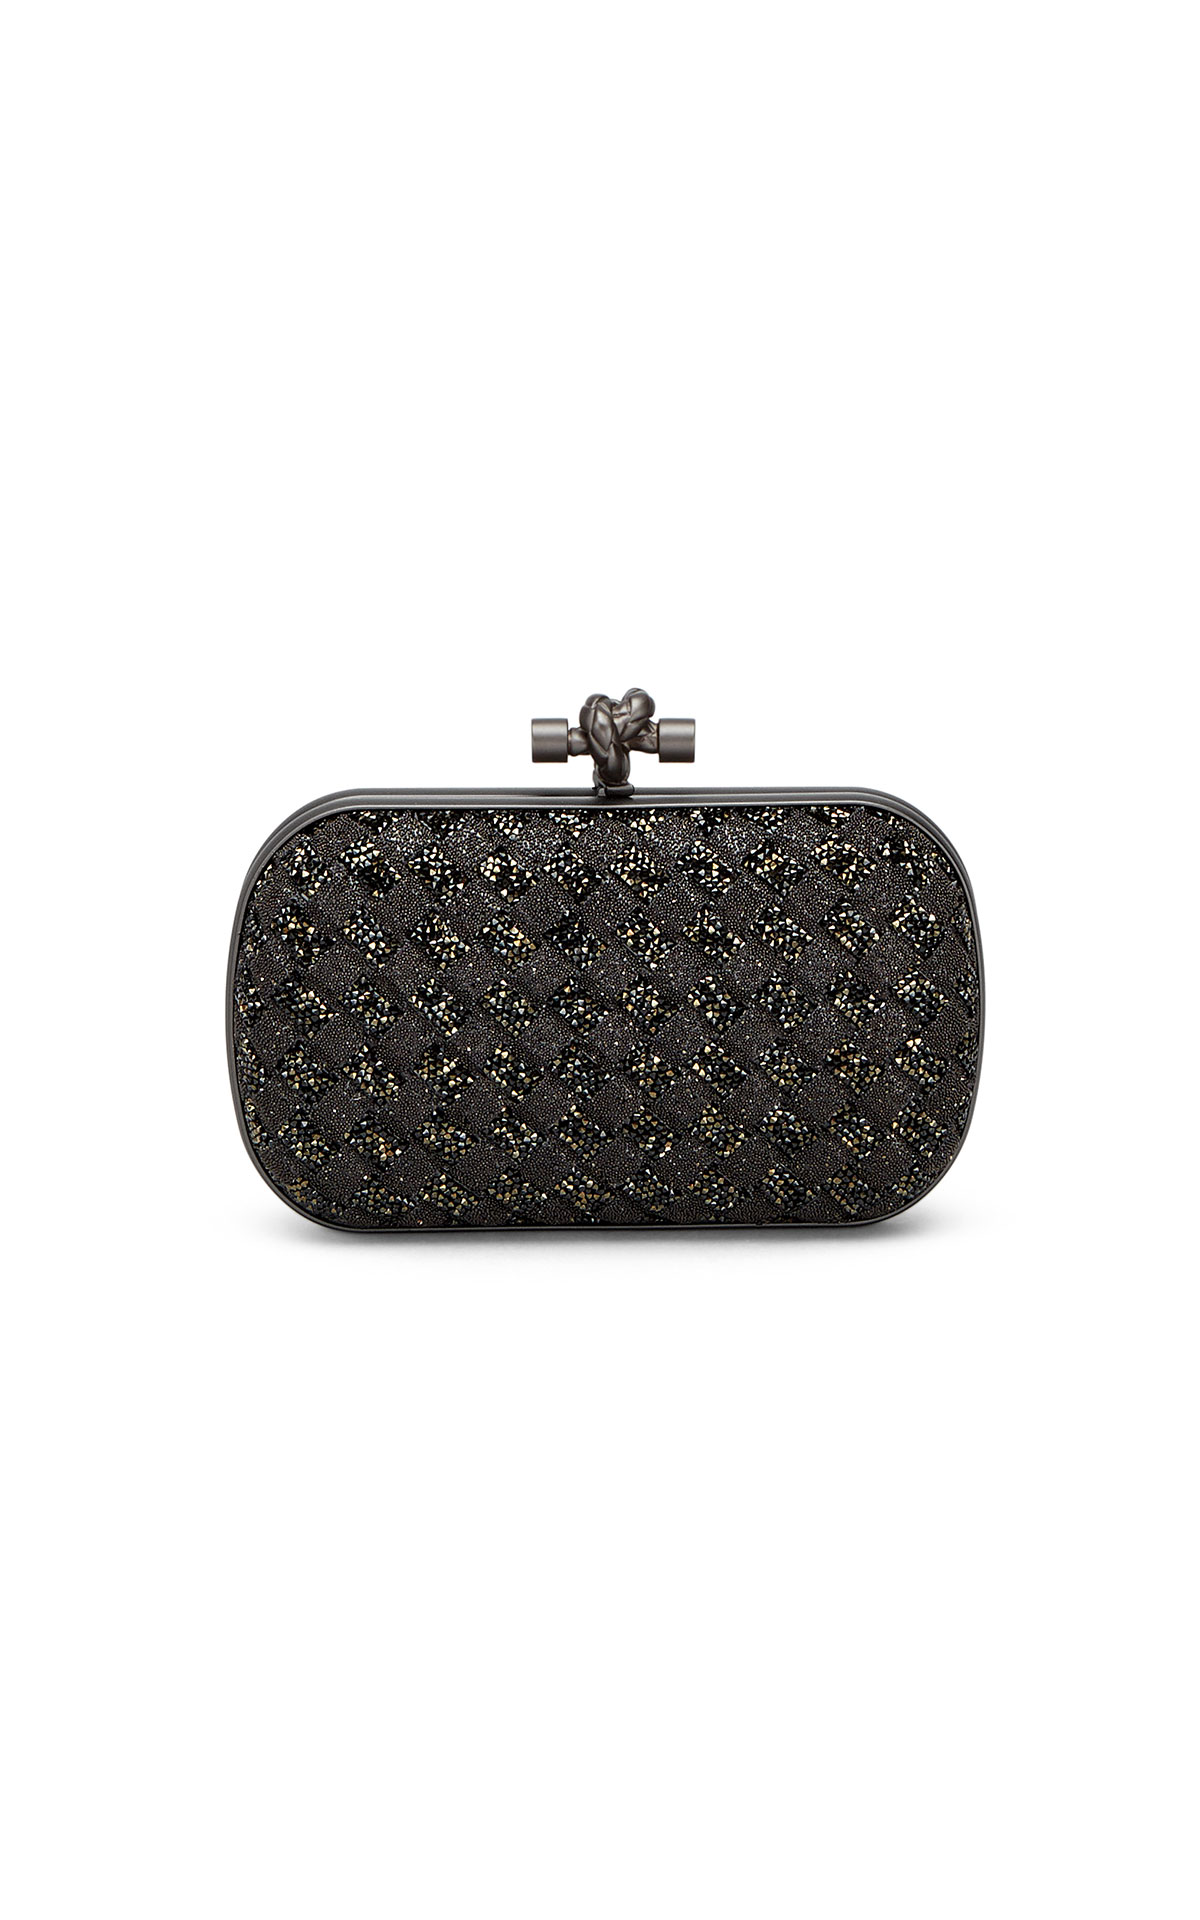 Bottega Veneta The Knot from Bicester Village